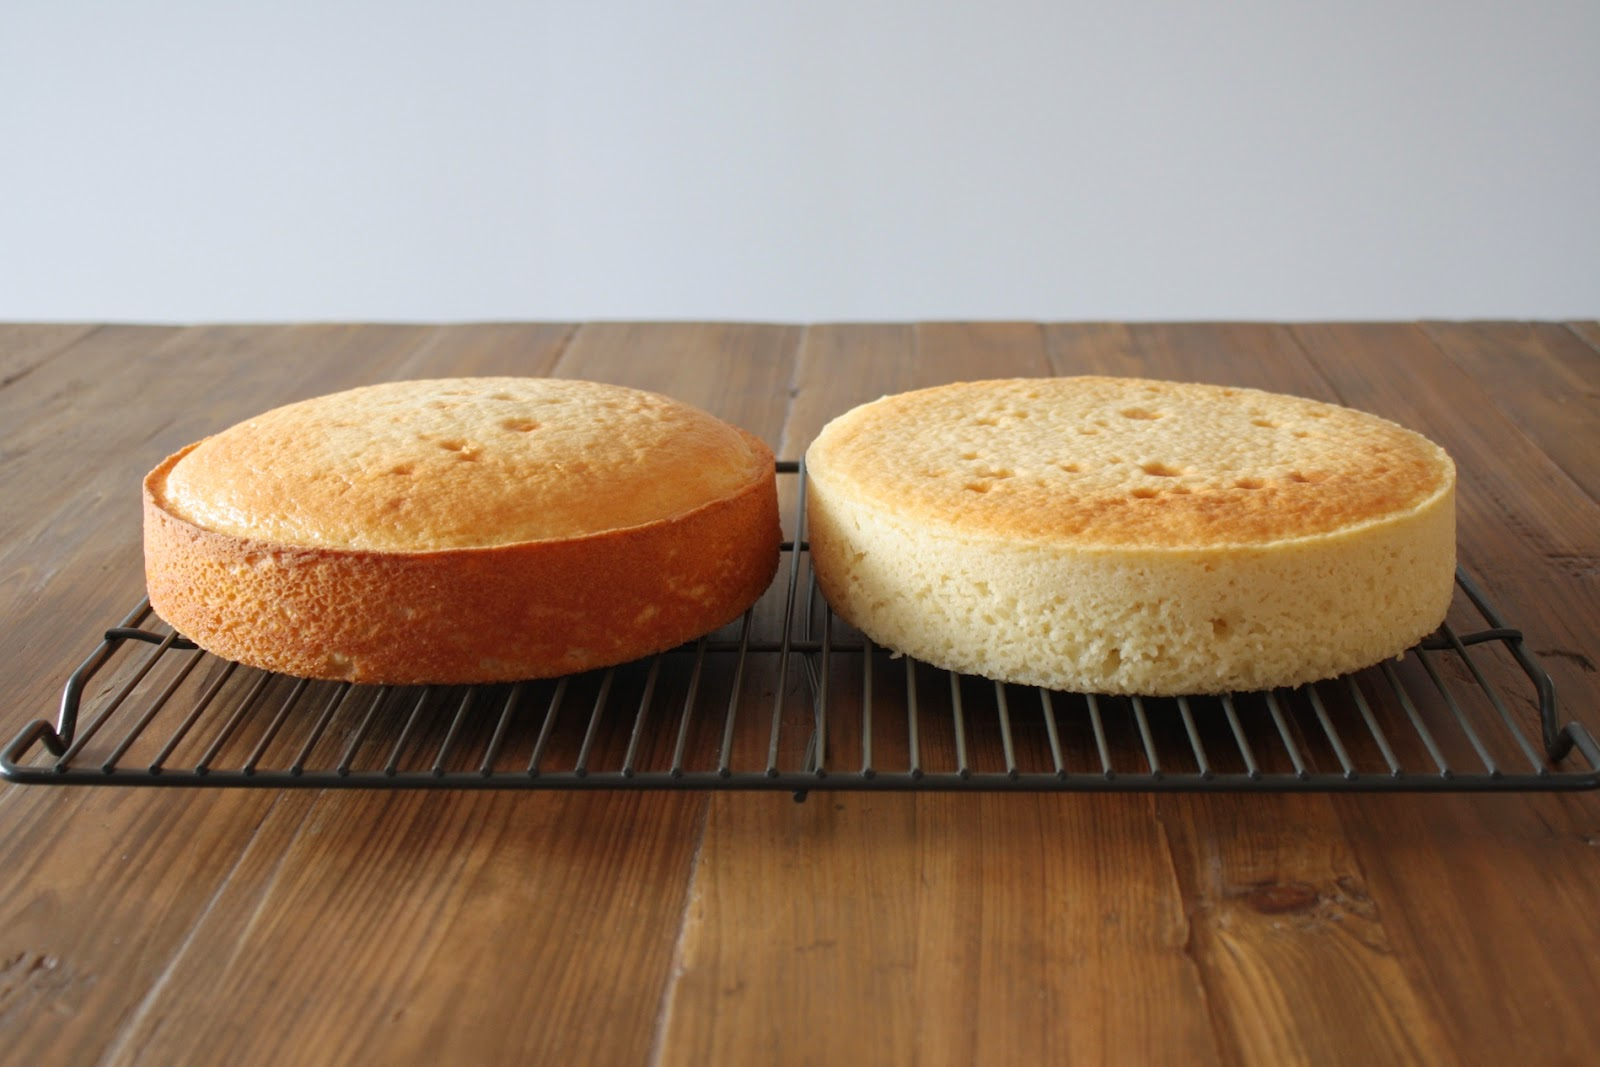 Side by side of cakes -- one flat, one domed and unevenly baked